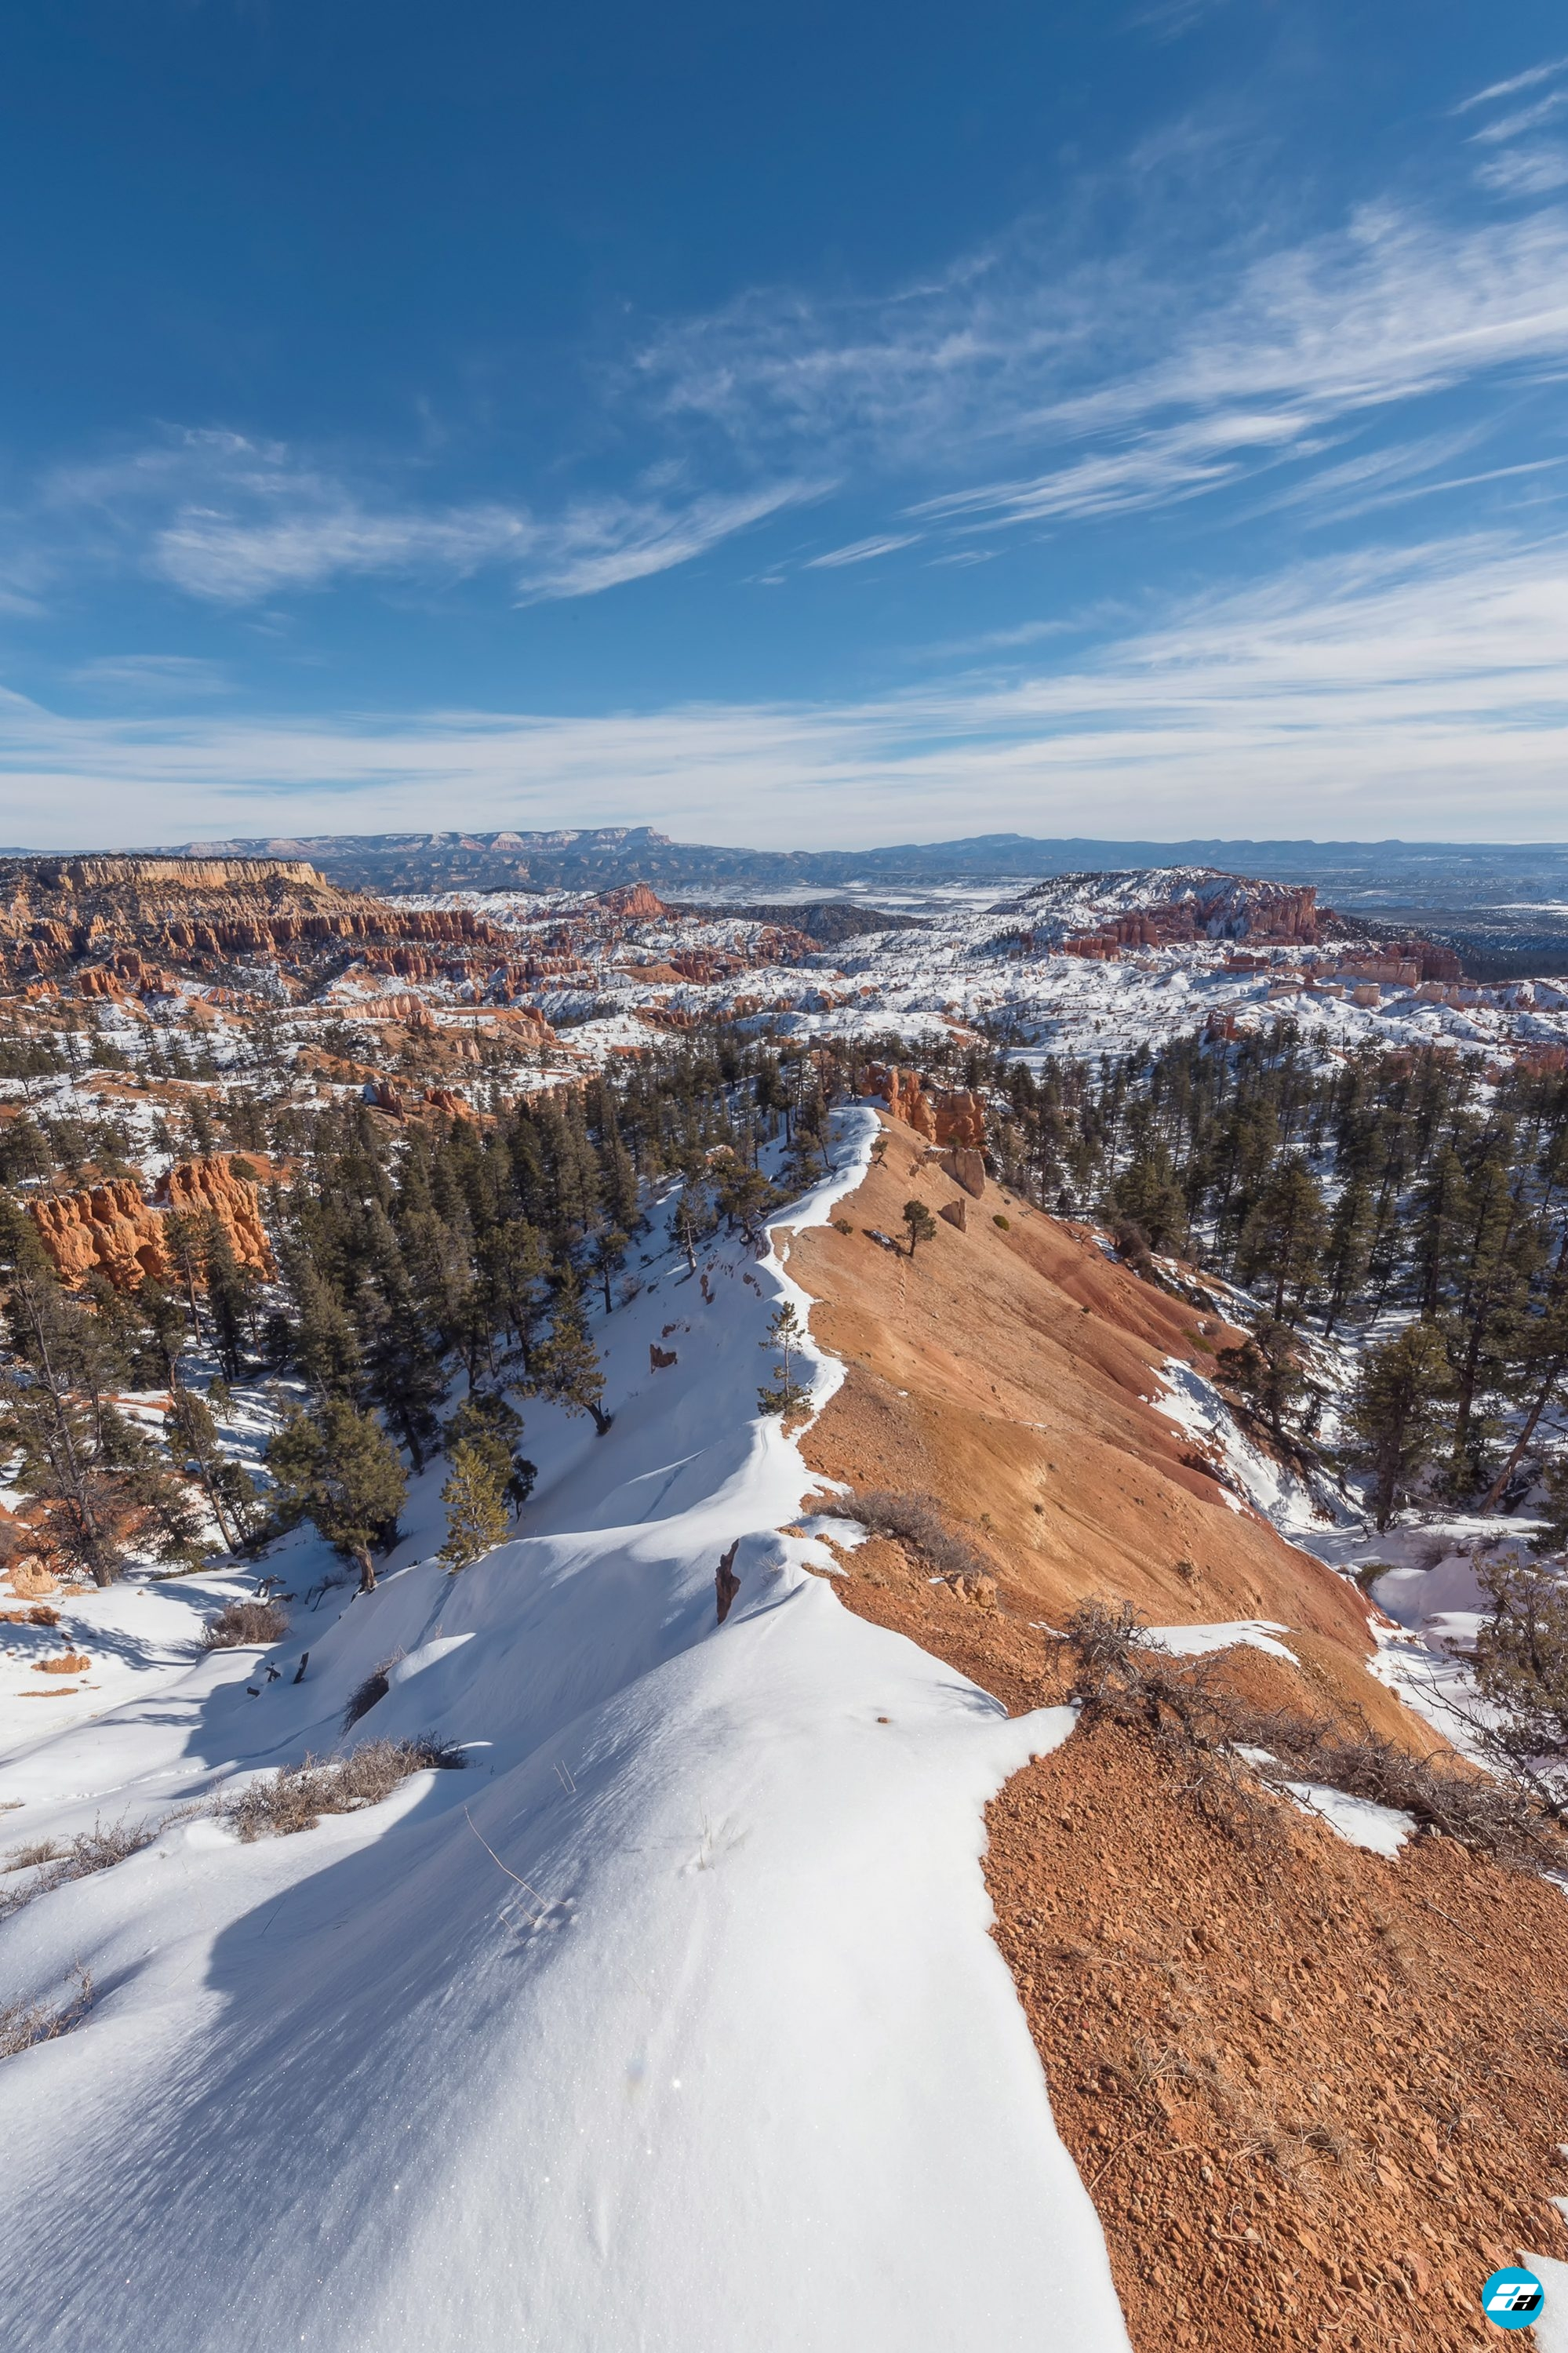 Bryce Canyon National Park, Utah, Arizona. View Point. Snow View. Valley View. Winter Season.